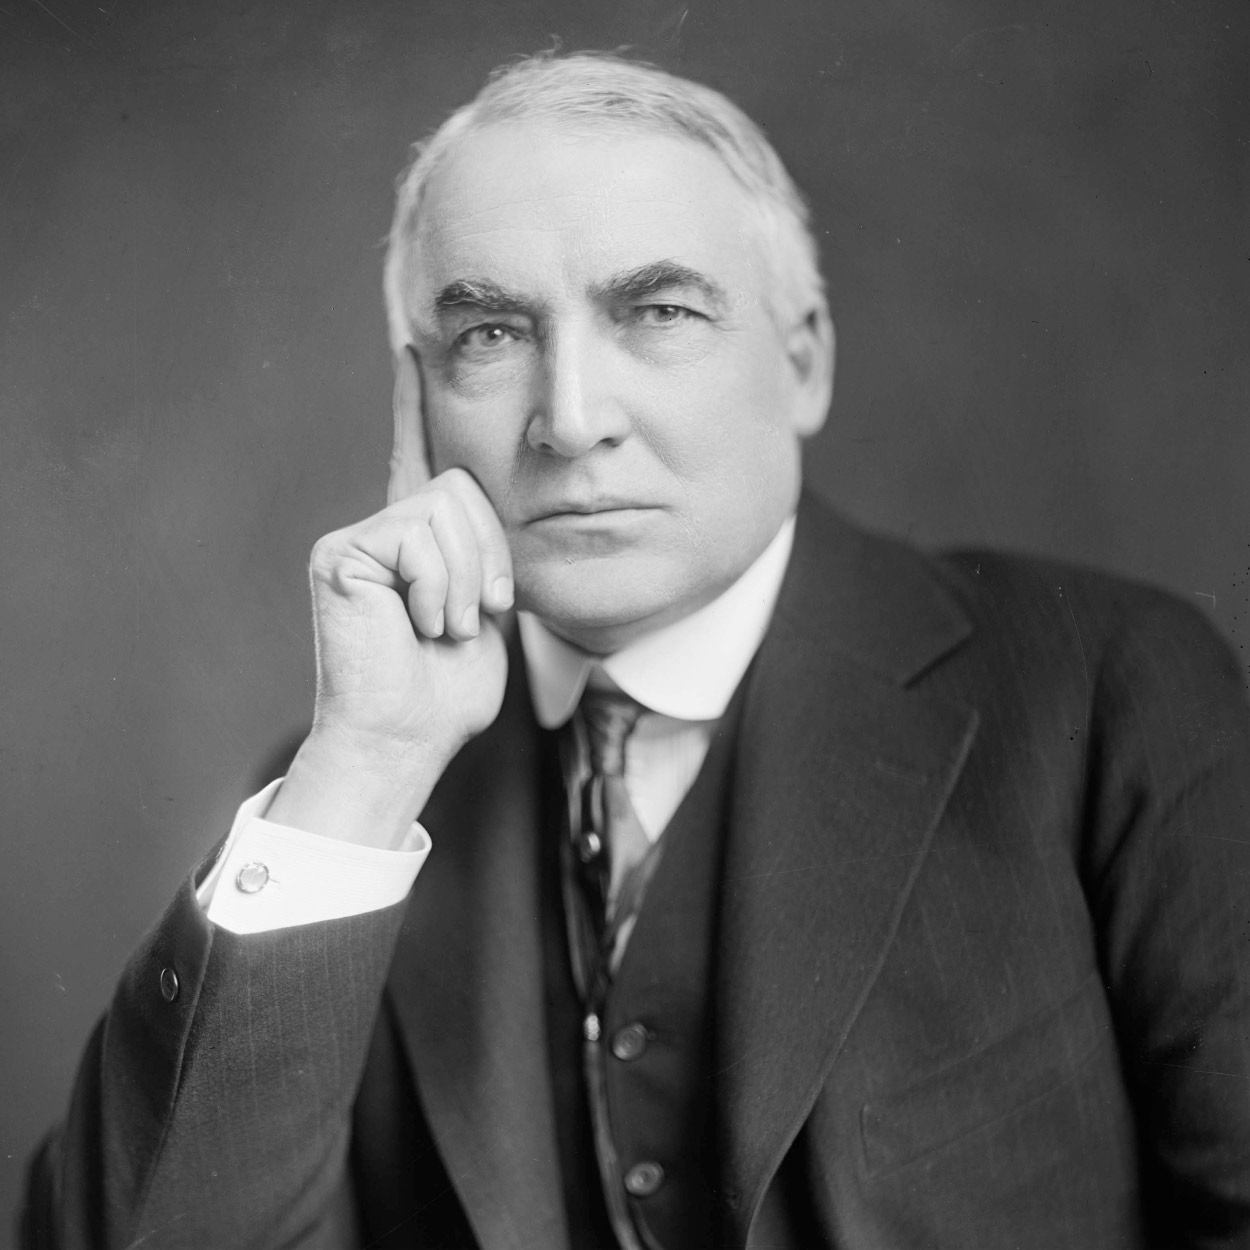 Portrait of Warren G. Harding, the 29th President of the United States